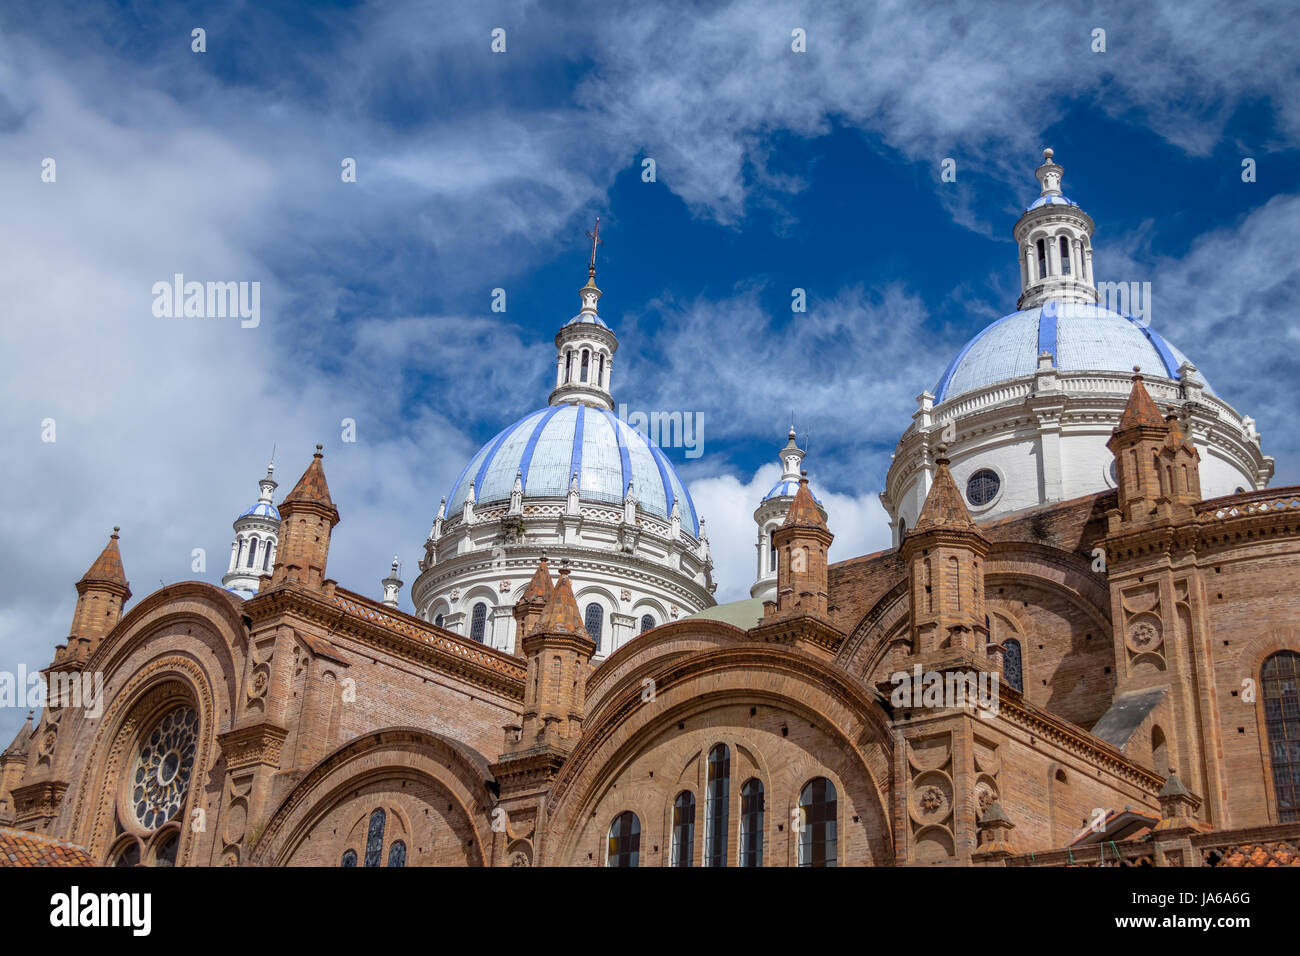 Blue Dome of Inmaculada Concepcion Cathedral - Cuenca, Ecuador - Stock Image